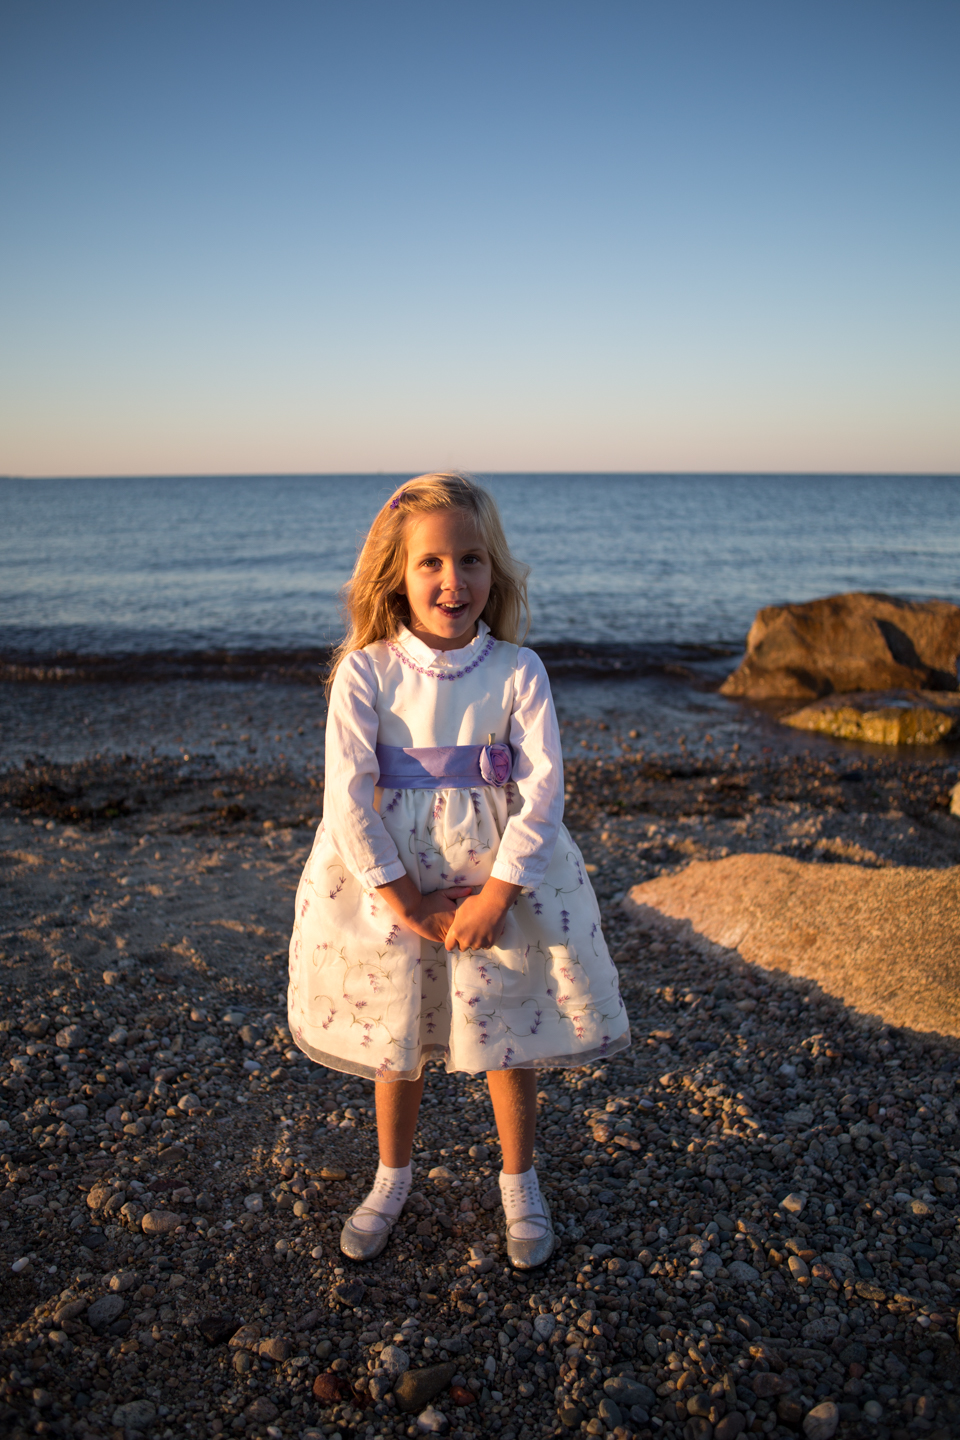 boston-photography-kids-susnet-beach.jpg